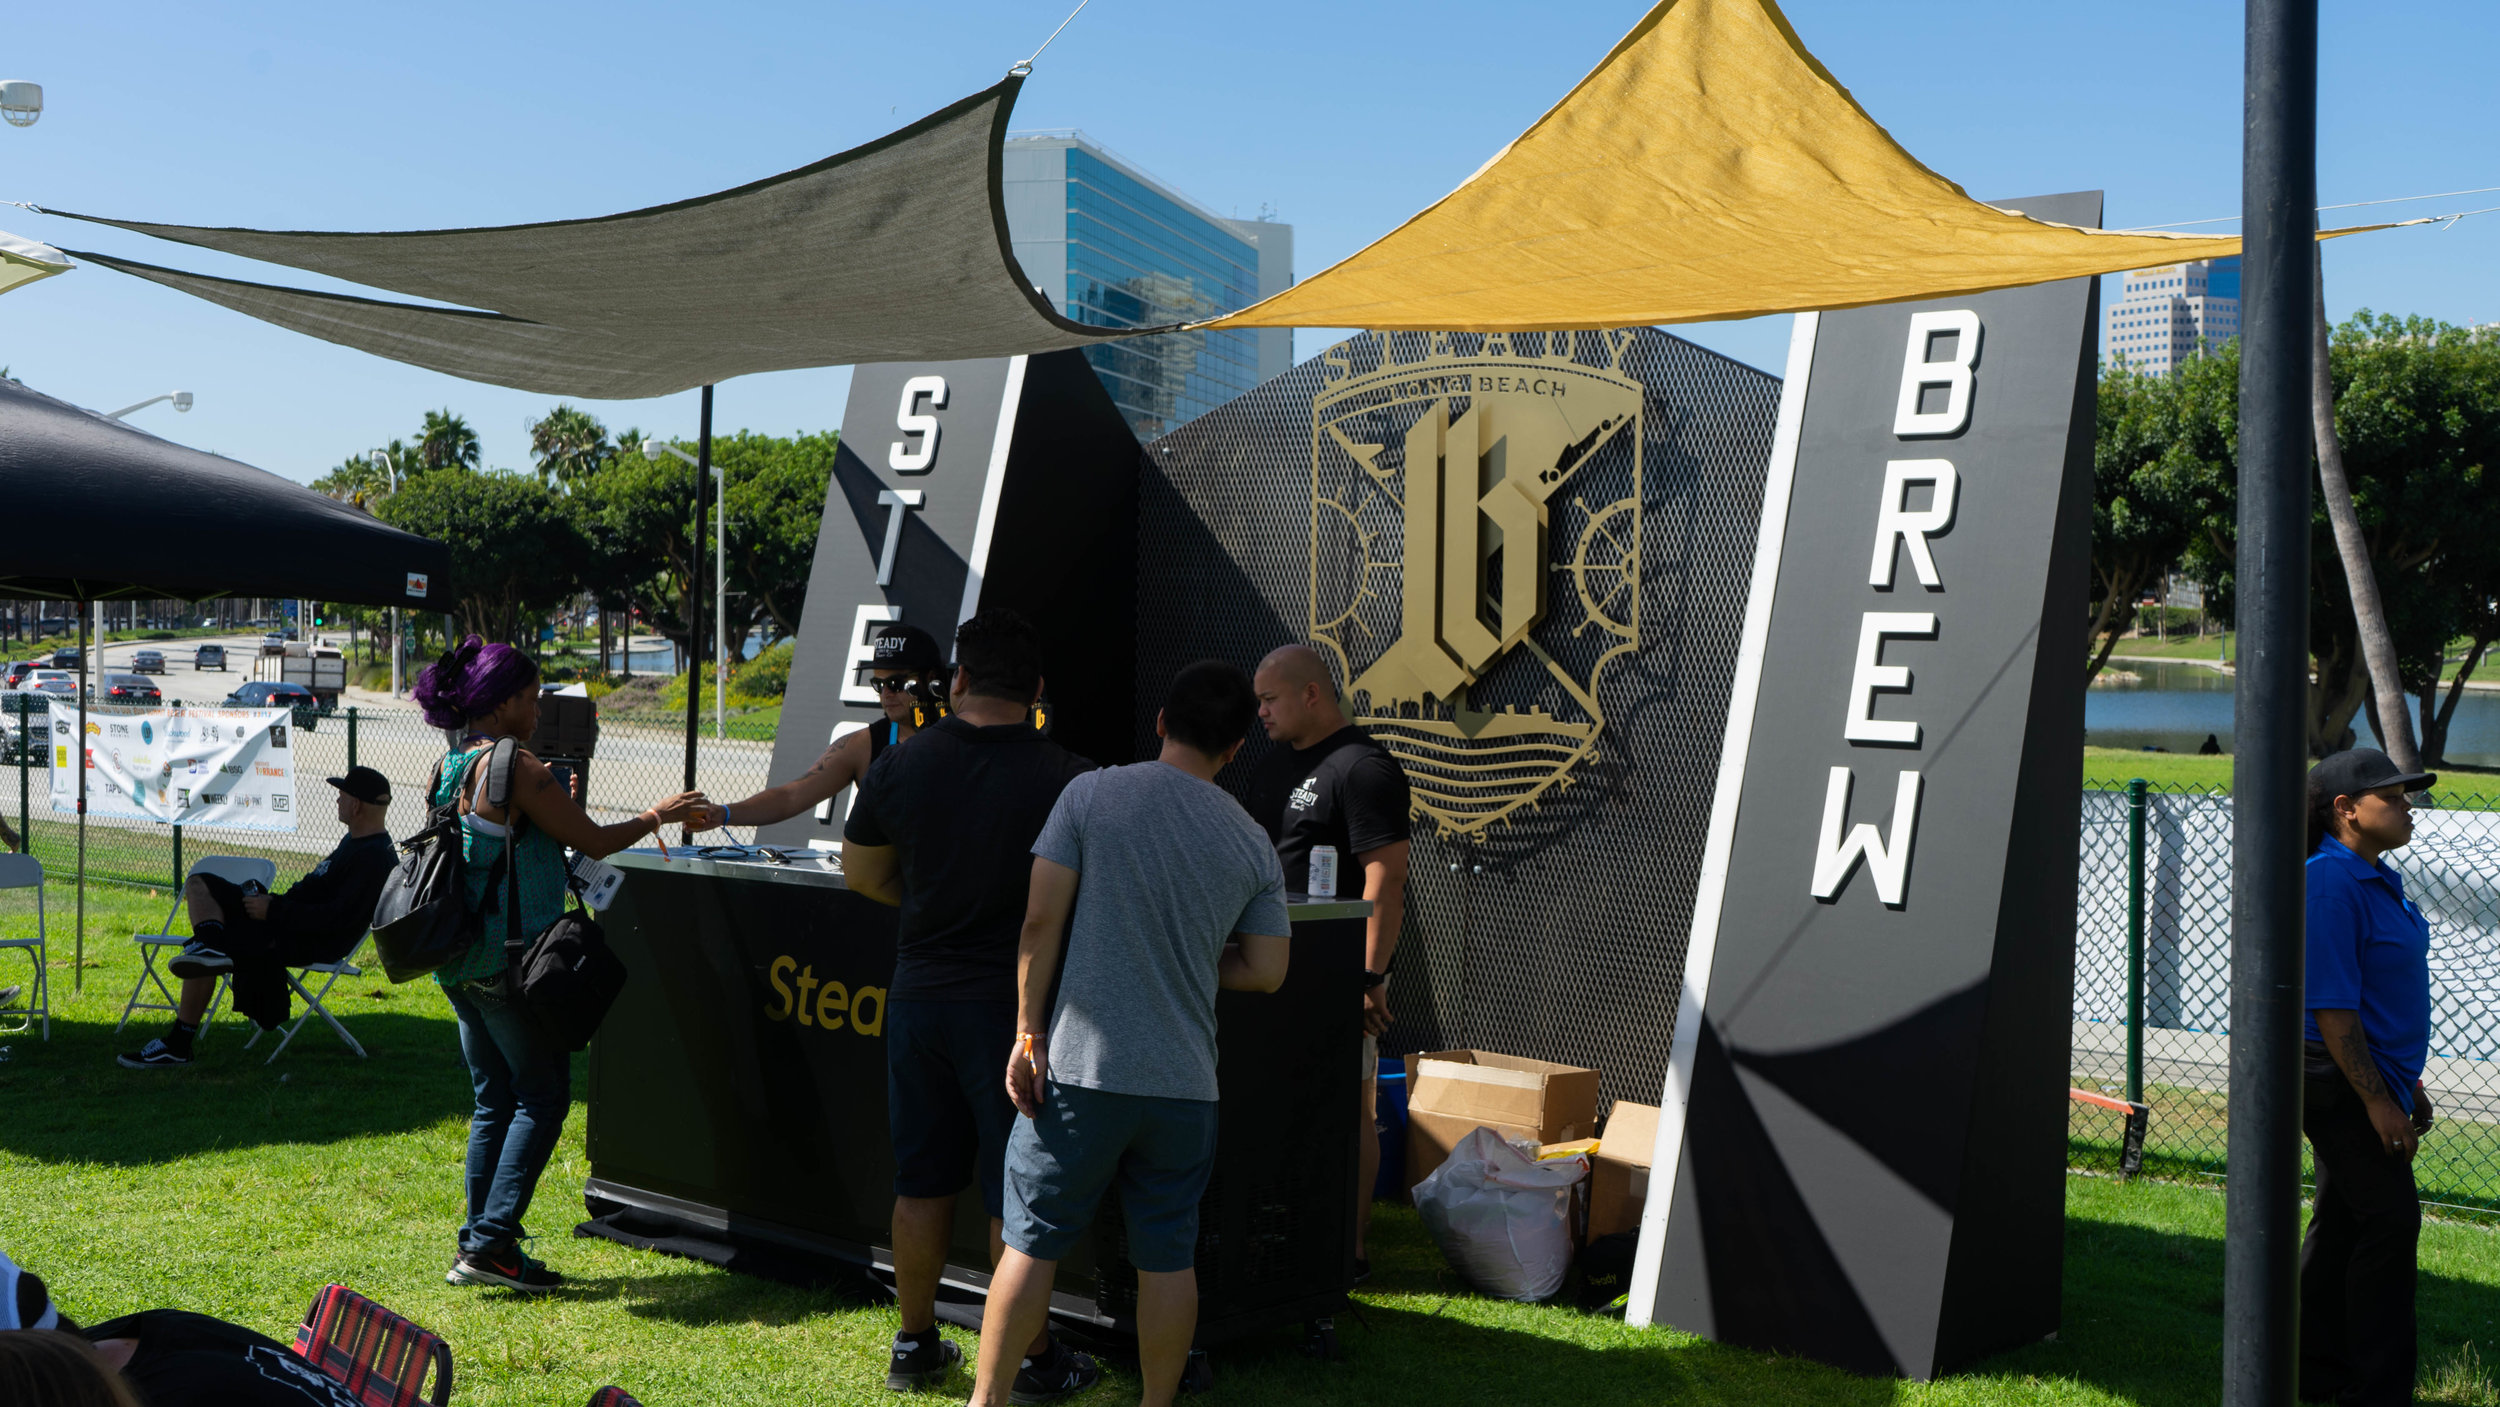 Long Beach's own Steady Brewing had a prominent display.